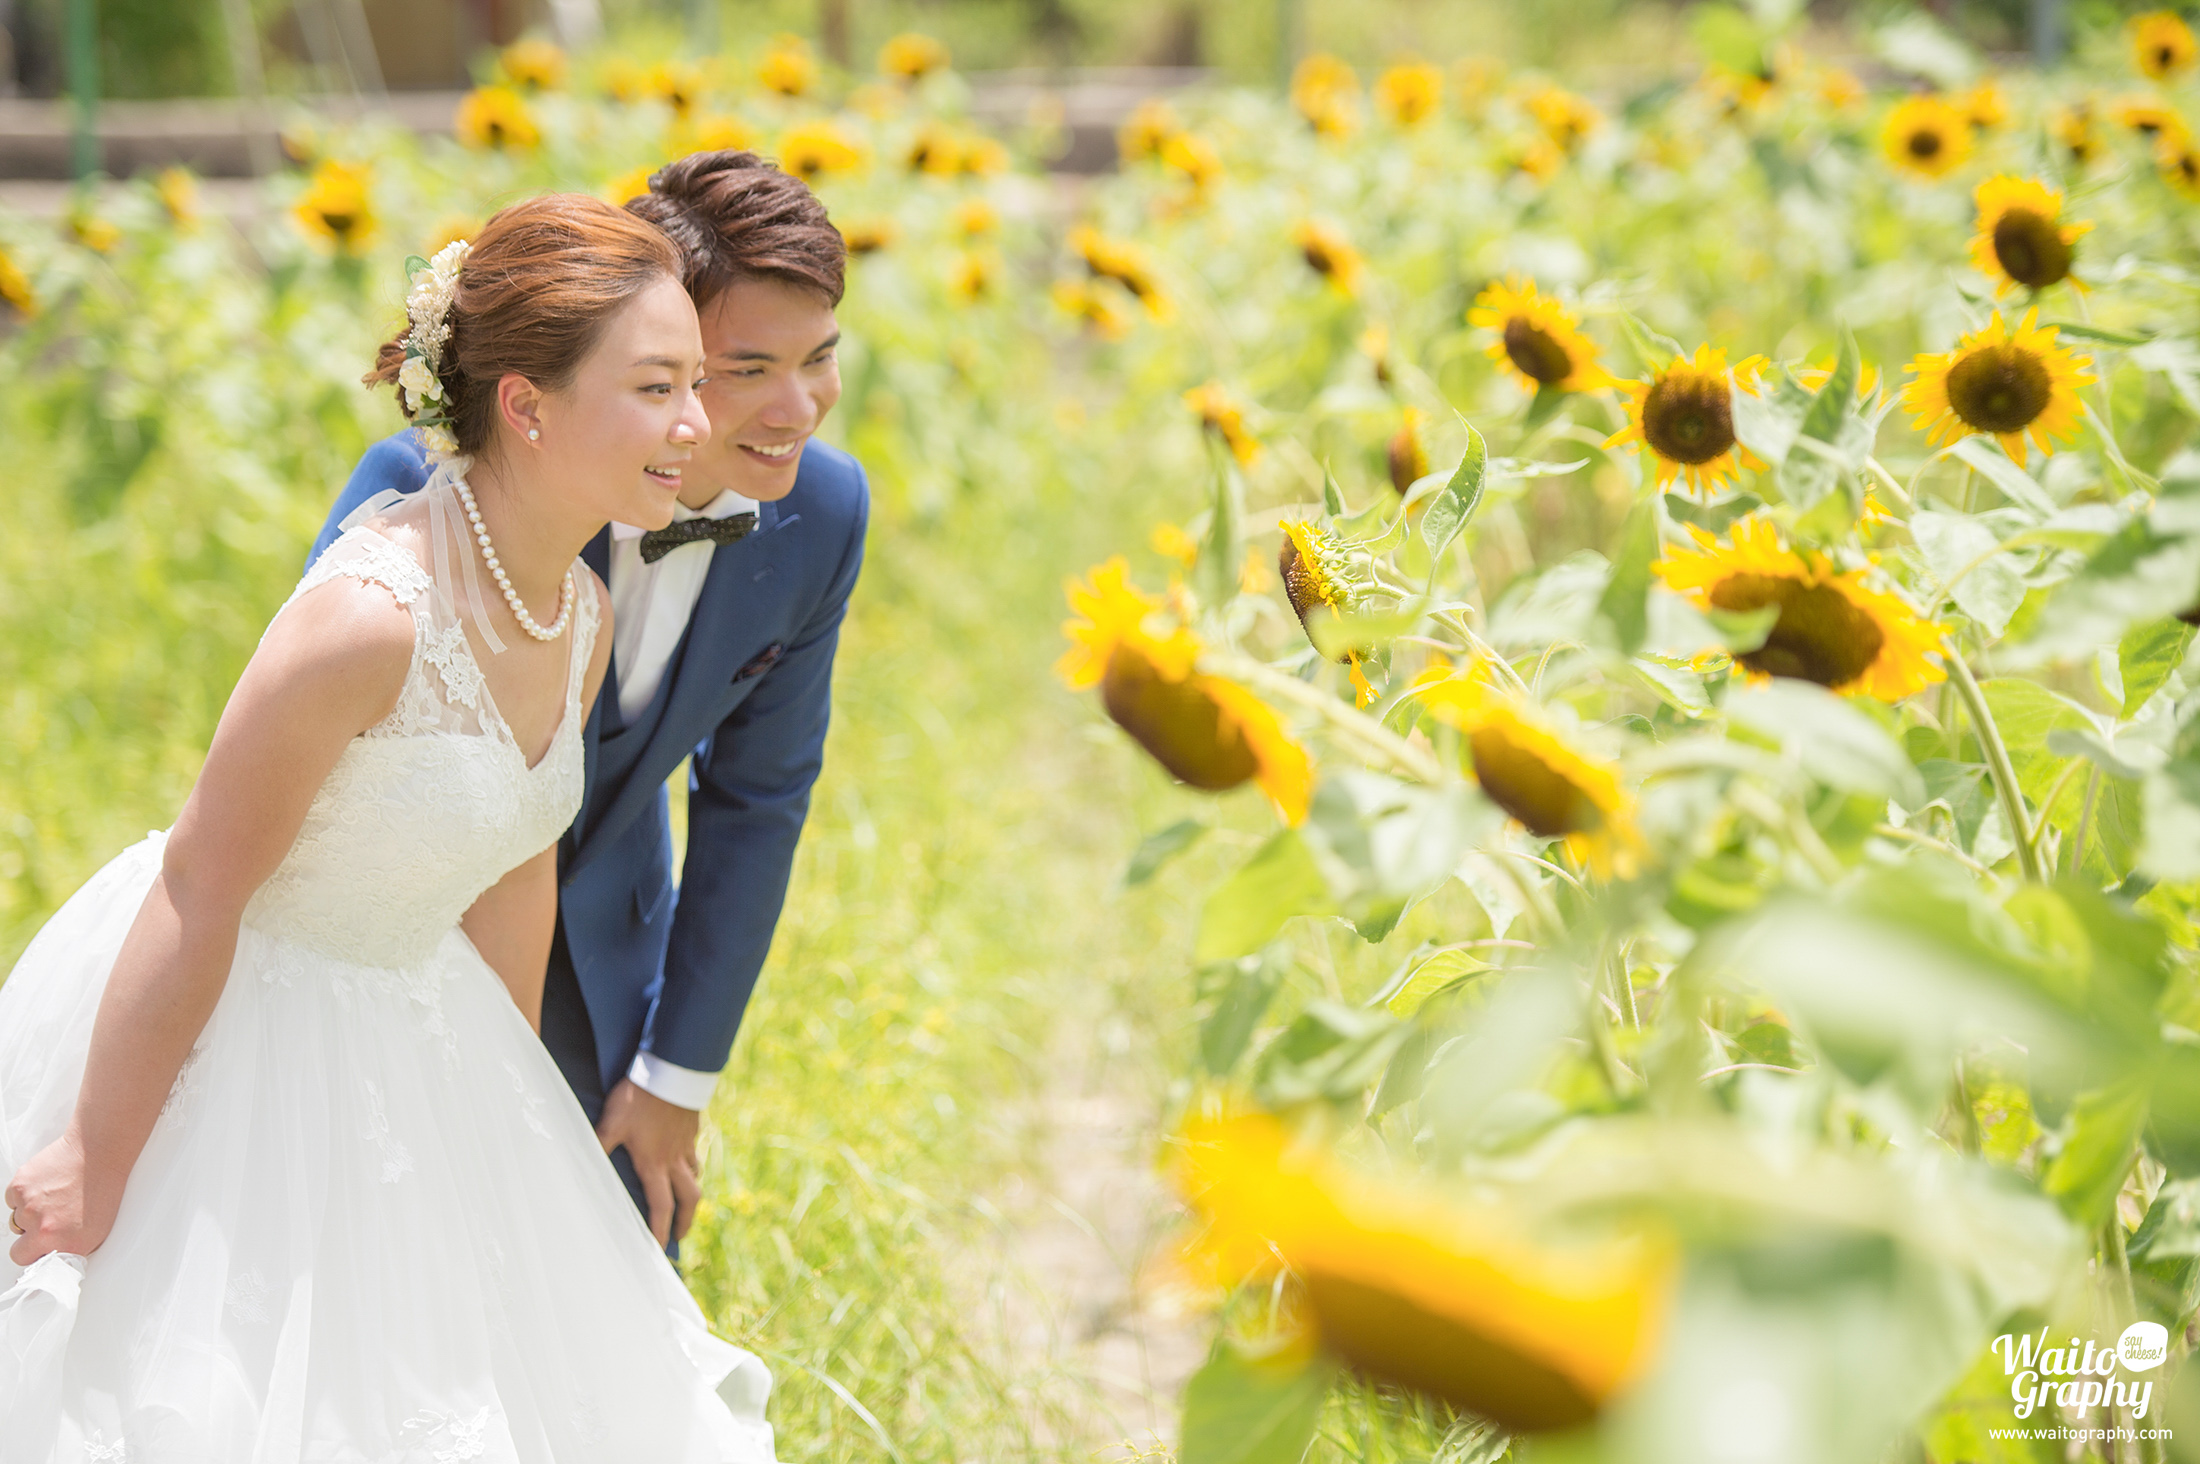 Natural HK pre wedding photo without any pose taken beside a sunflower field in Hong Kong